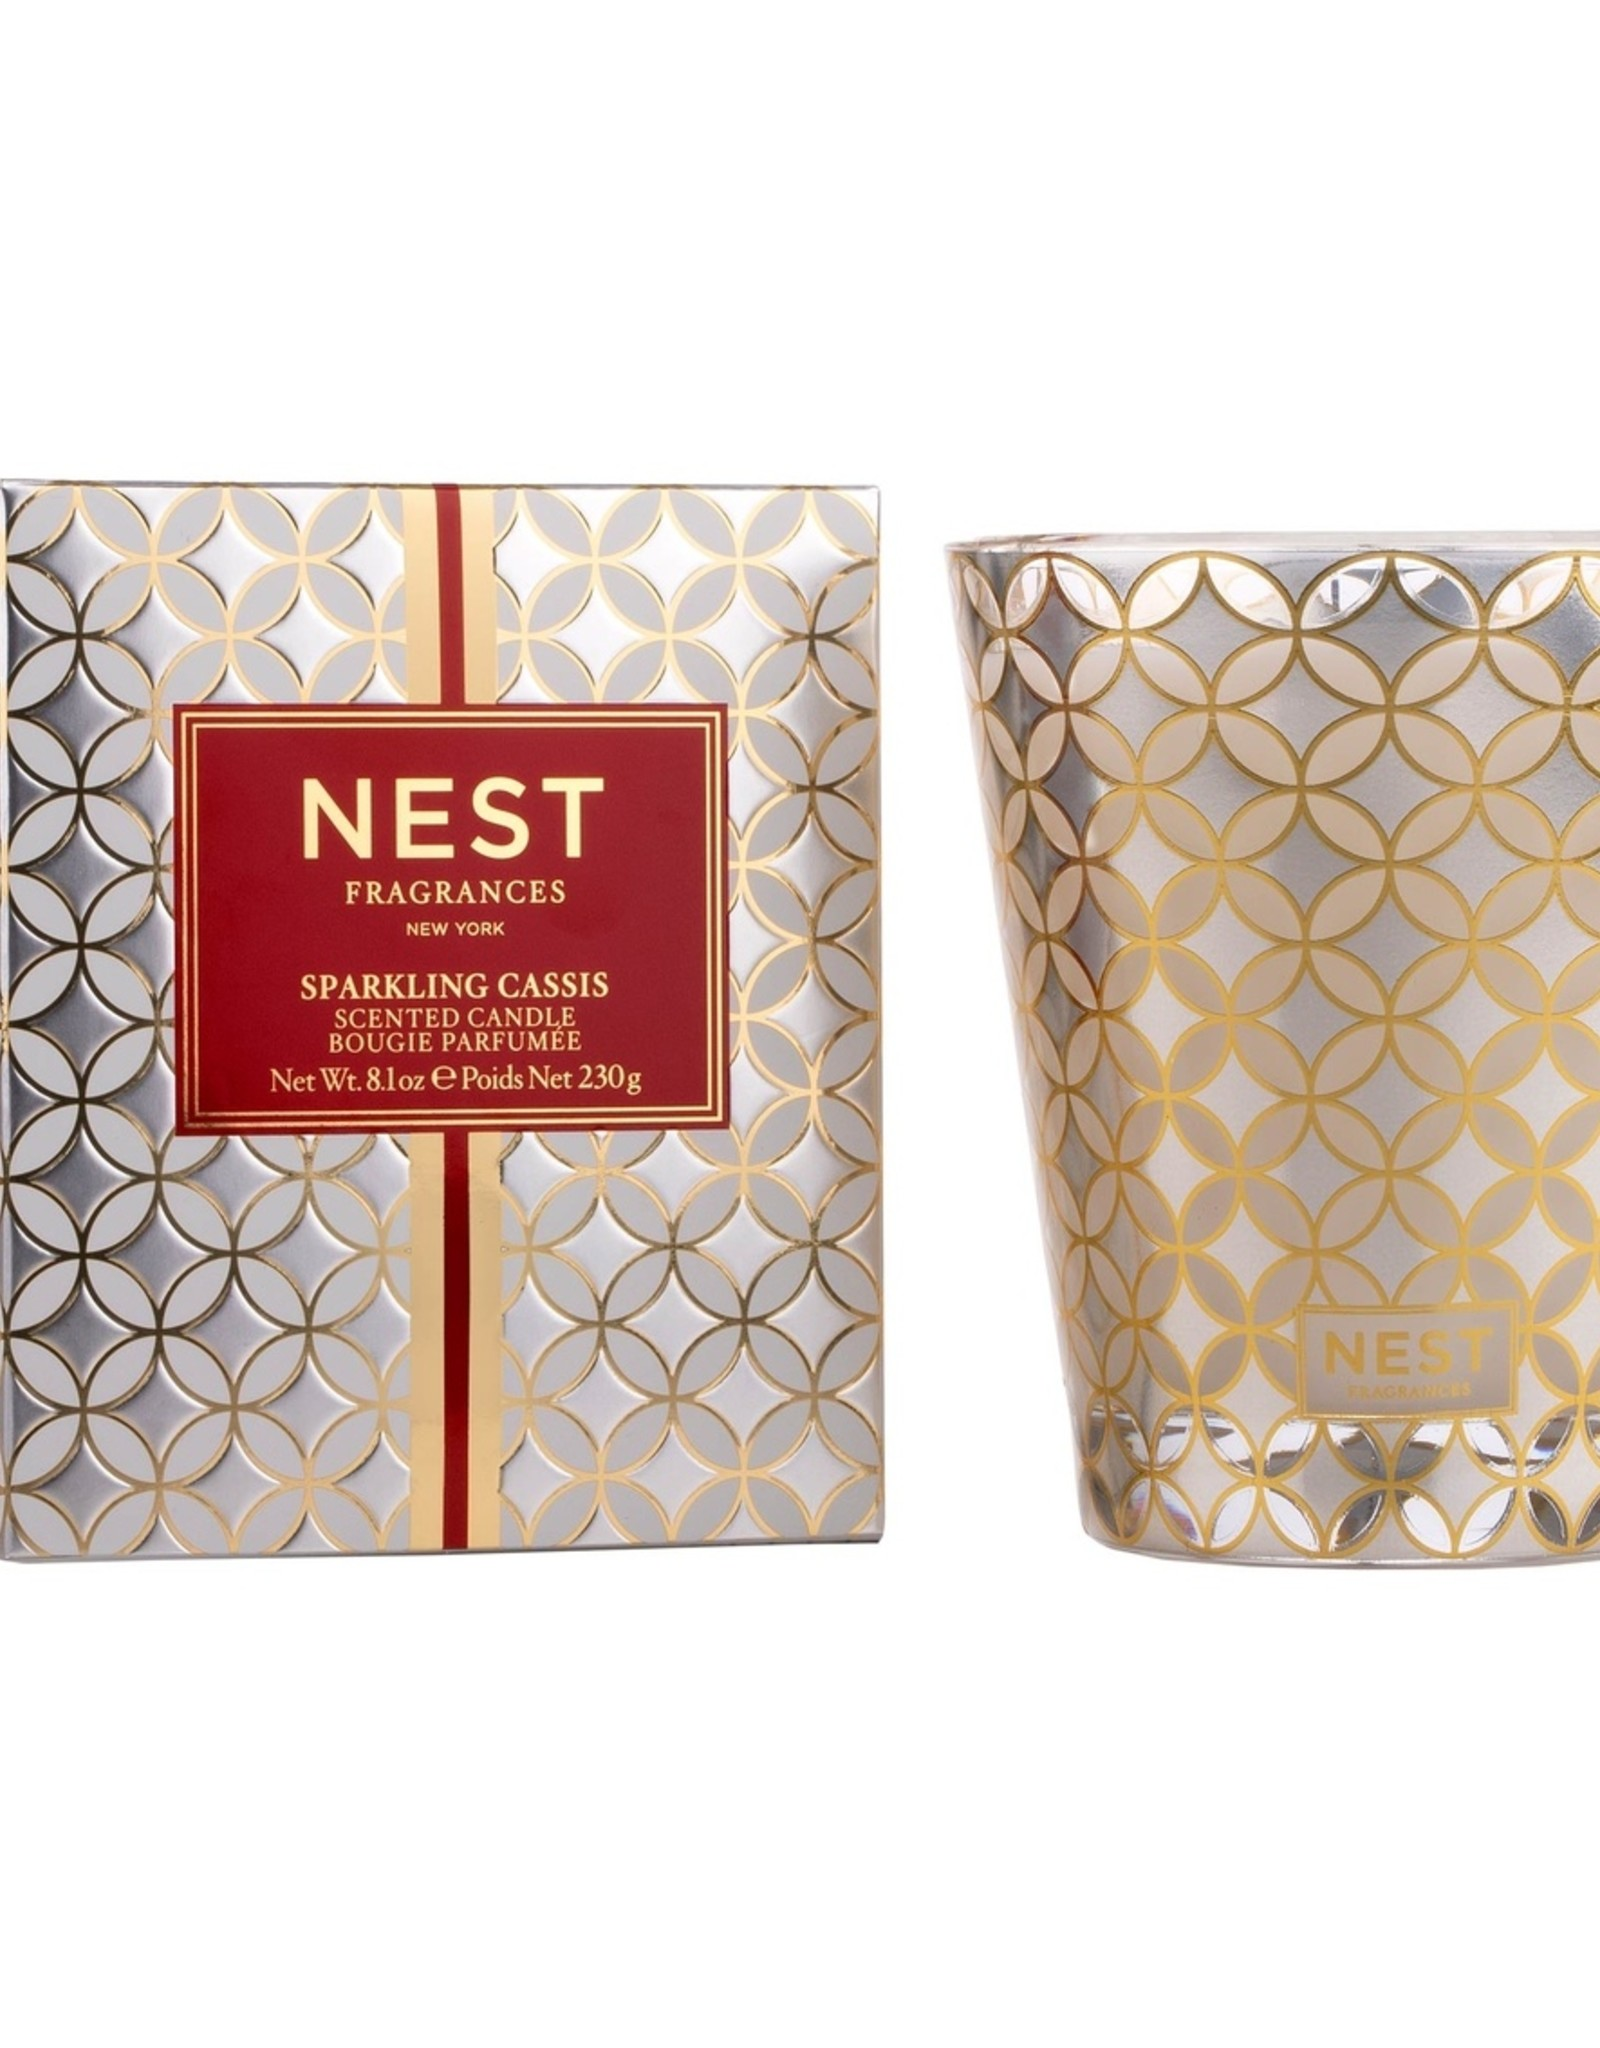 NF-NY Sparkling Cassis Candle 8.1 oz